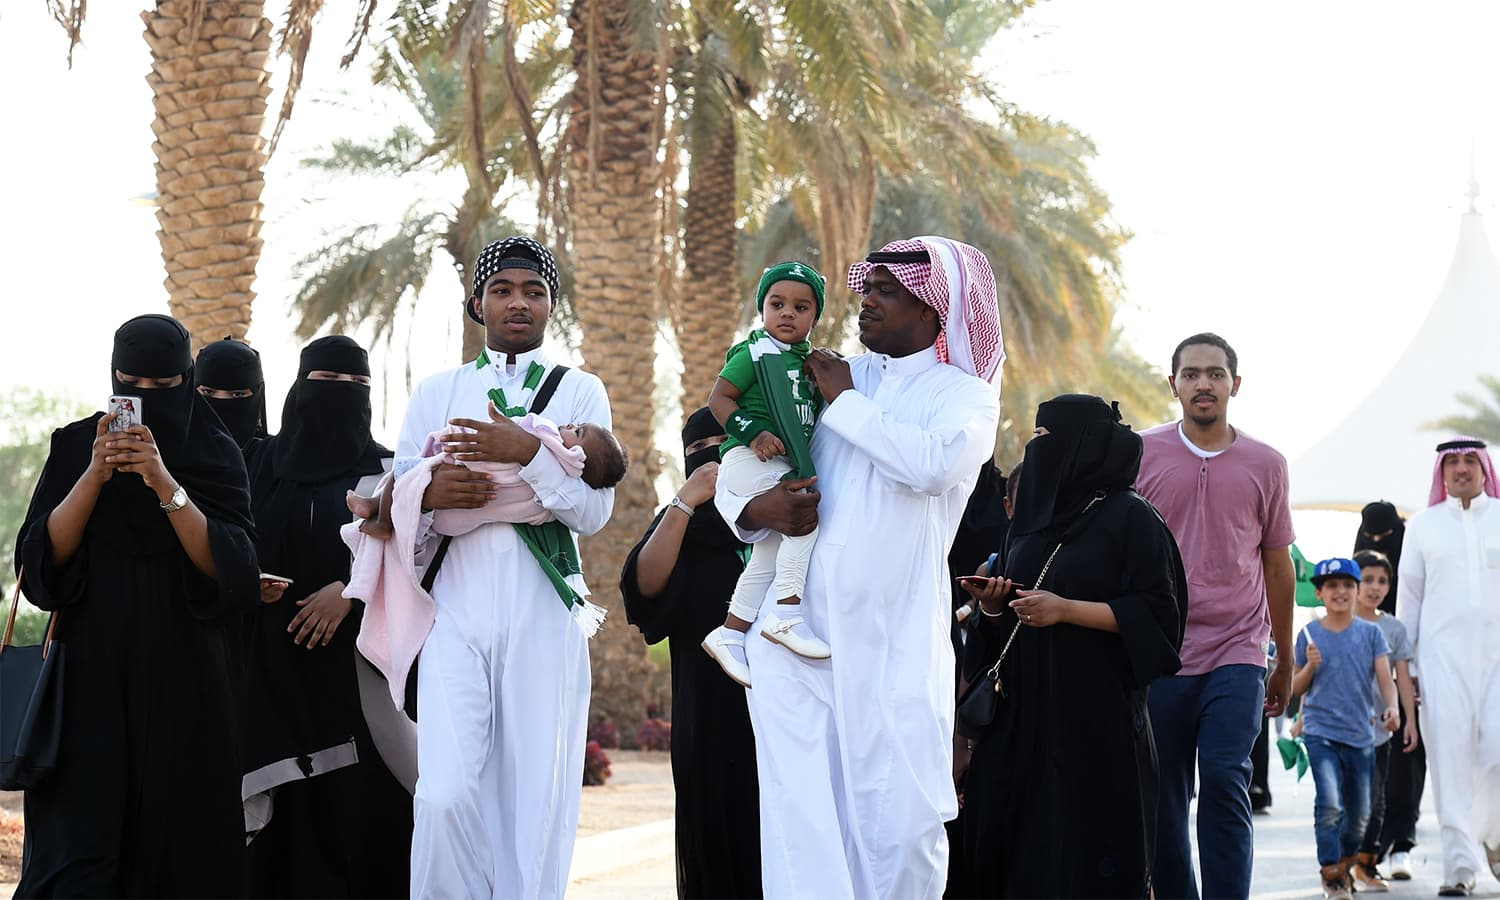 Saudi families arrive outside a stadium to attend an event in the capital Riyadh. — AFP